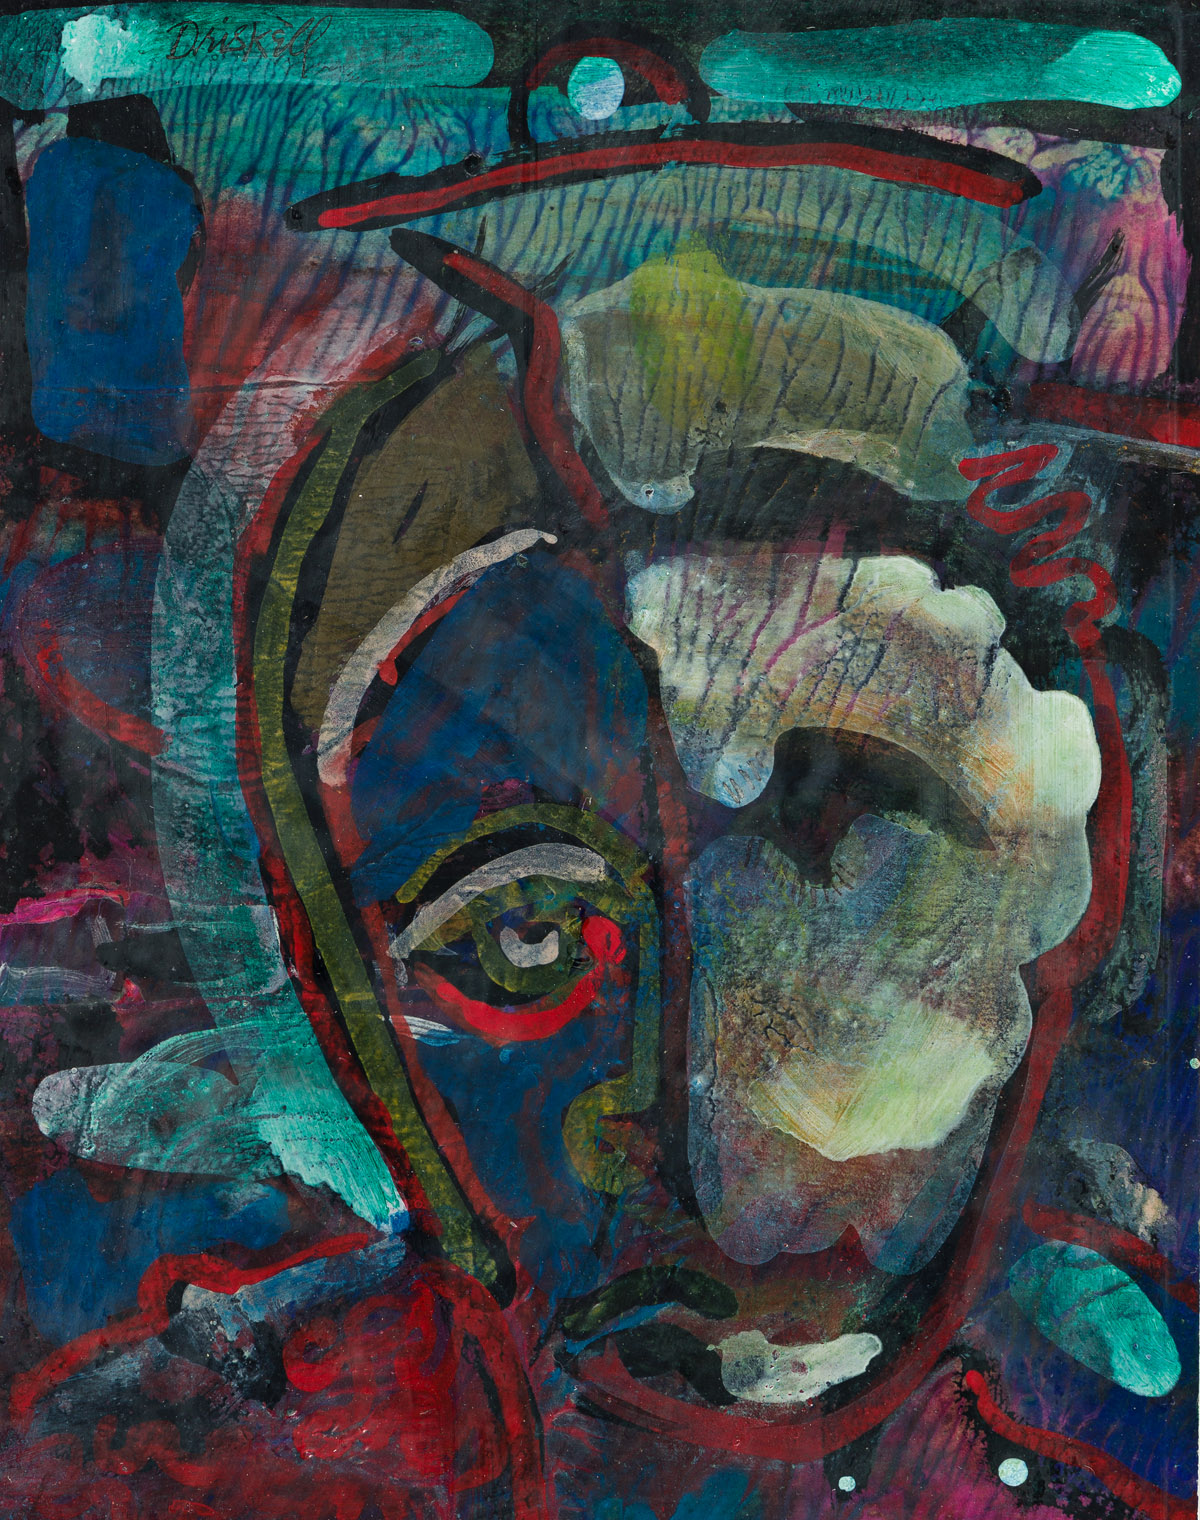 DAVID DRISKELL (1931 - 2020) The Ghost.